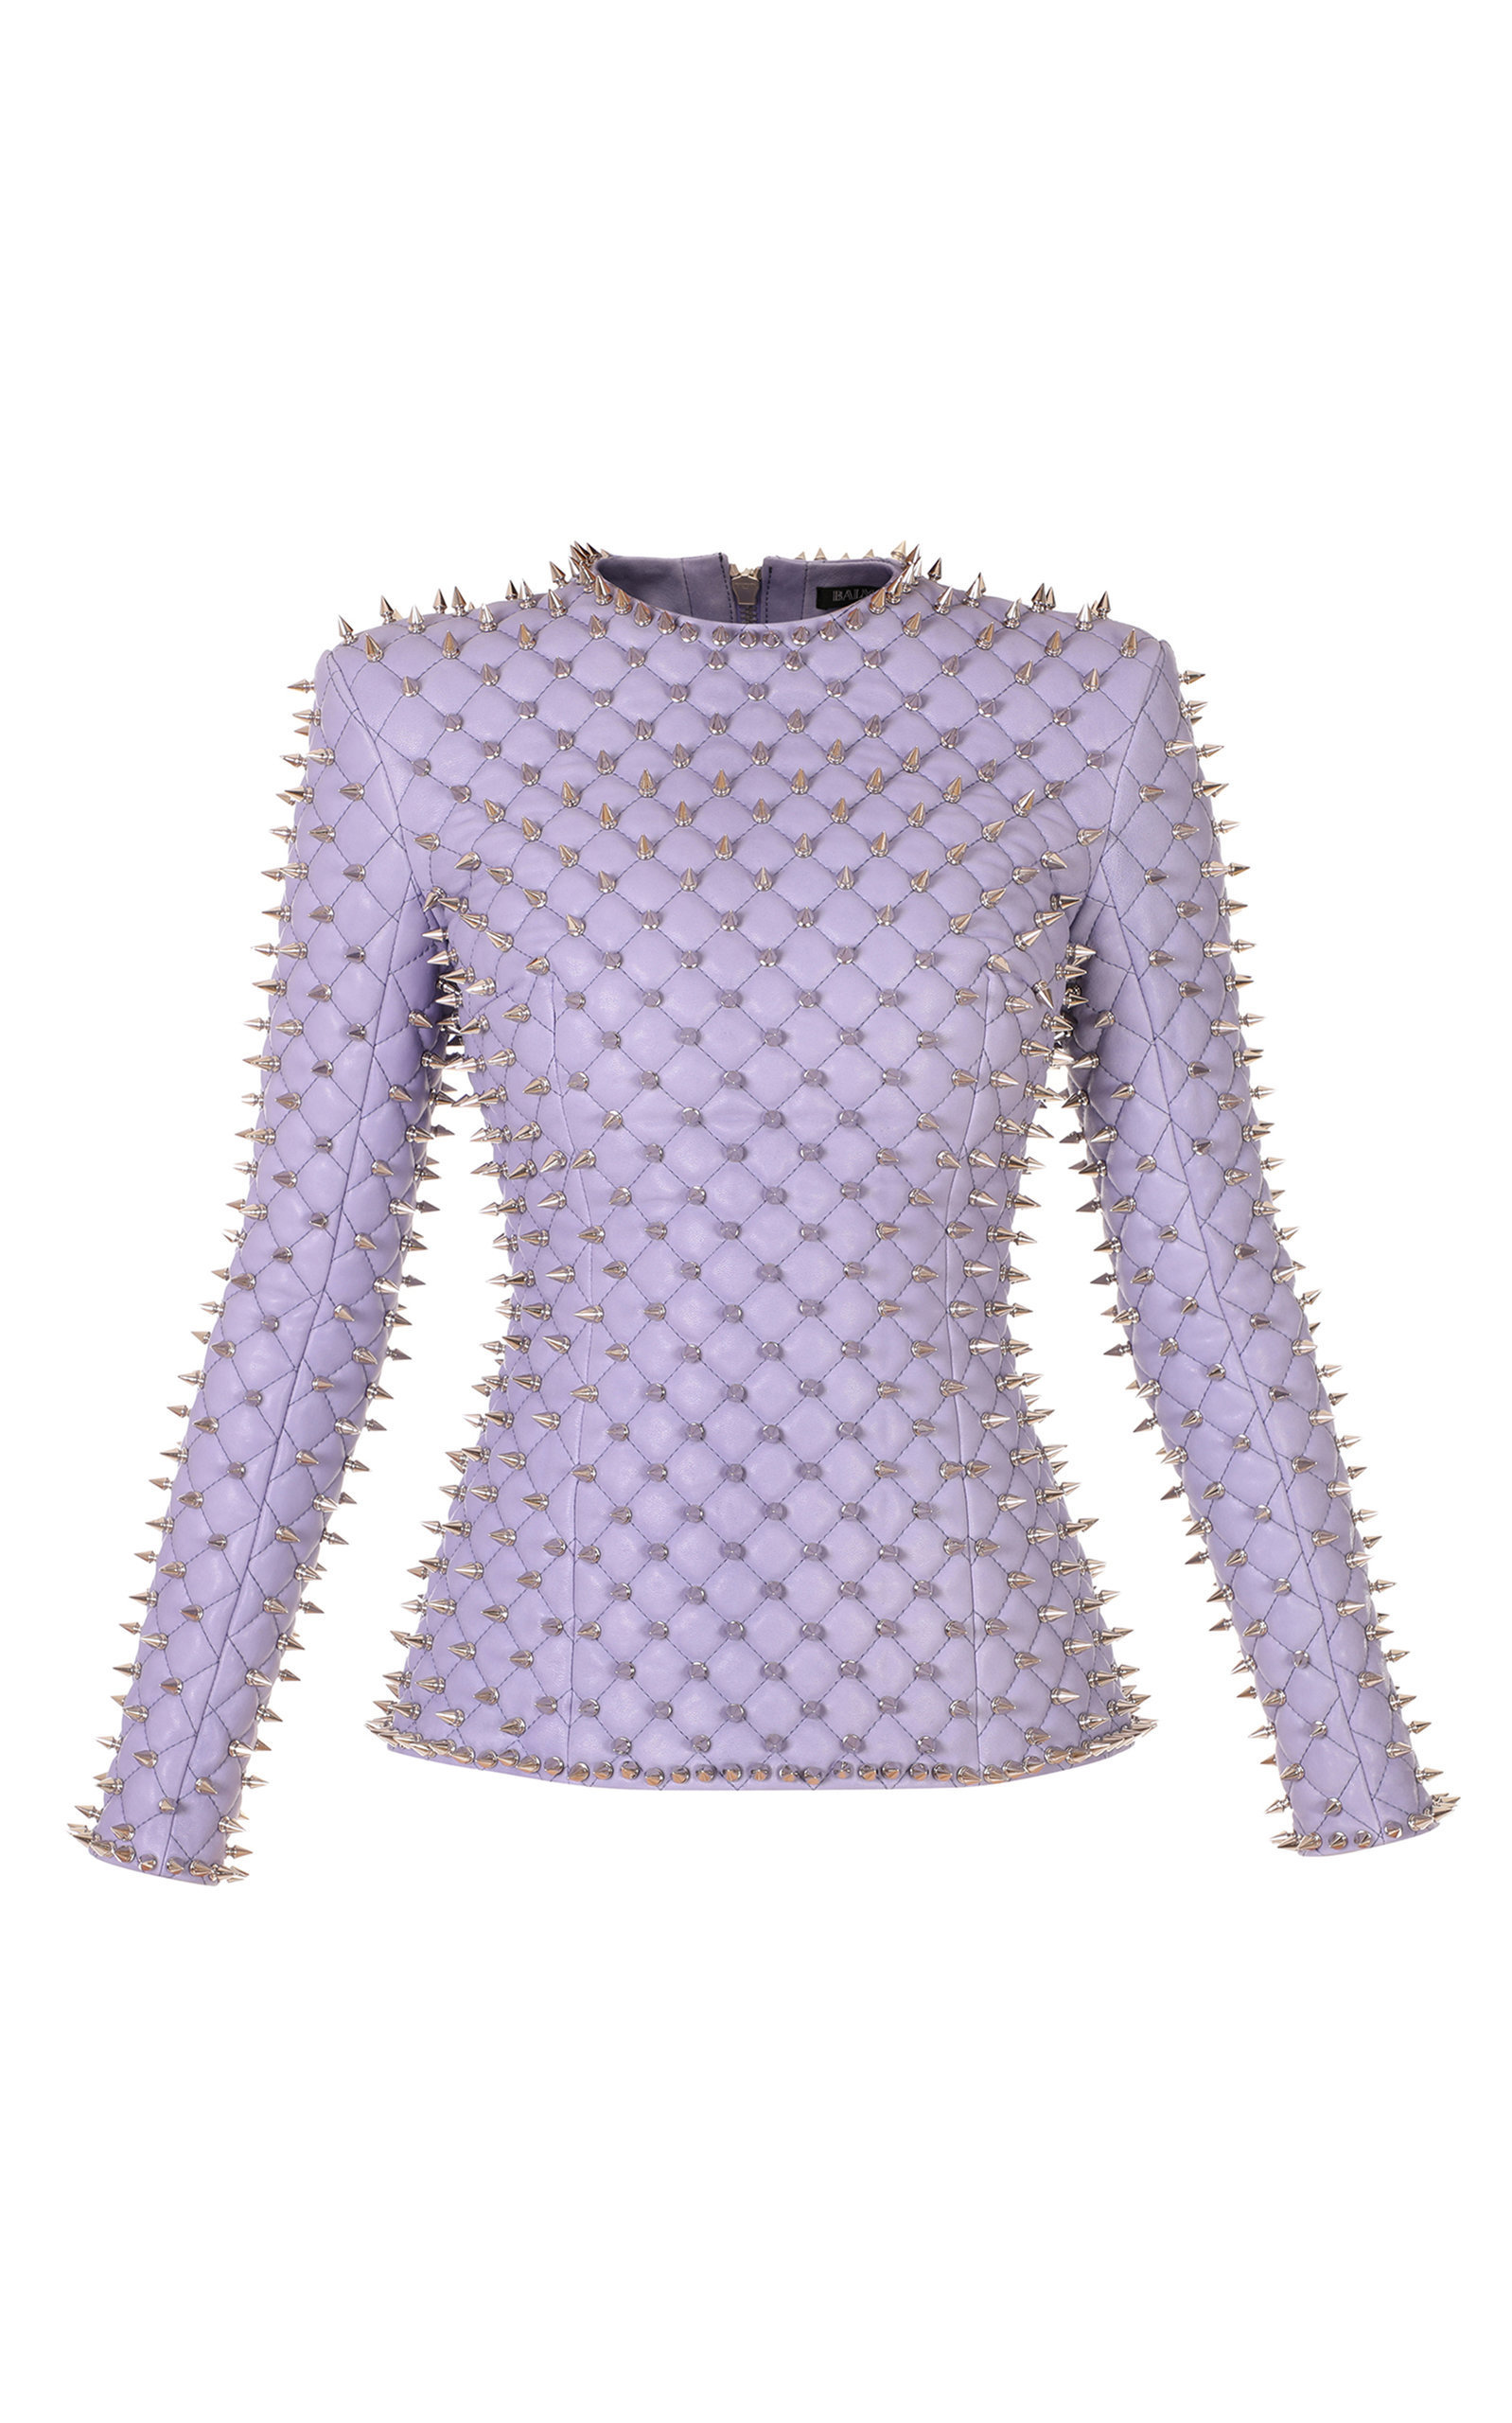 Spiked Quilted Leather Top